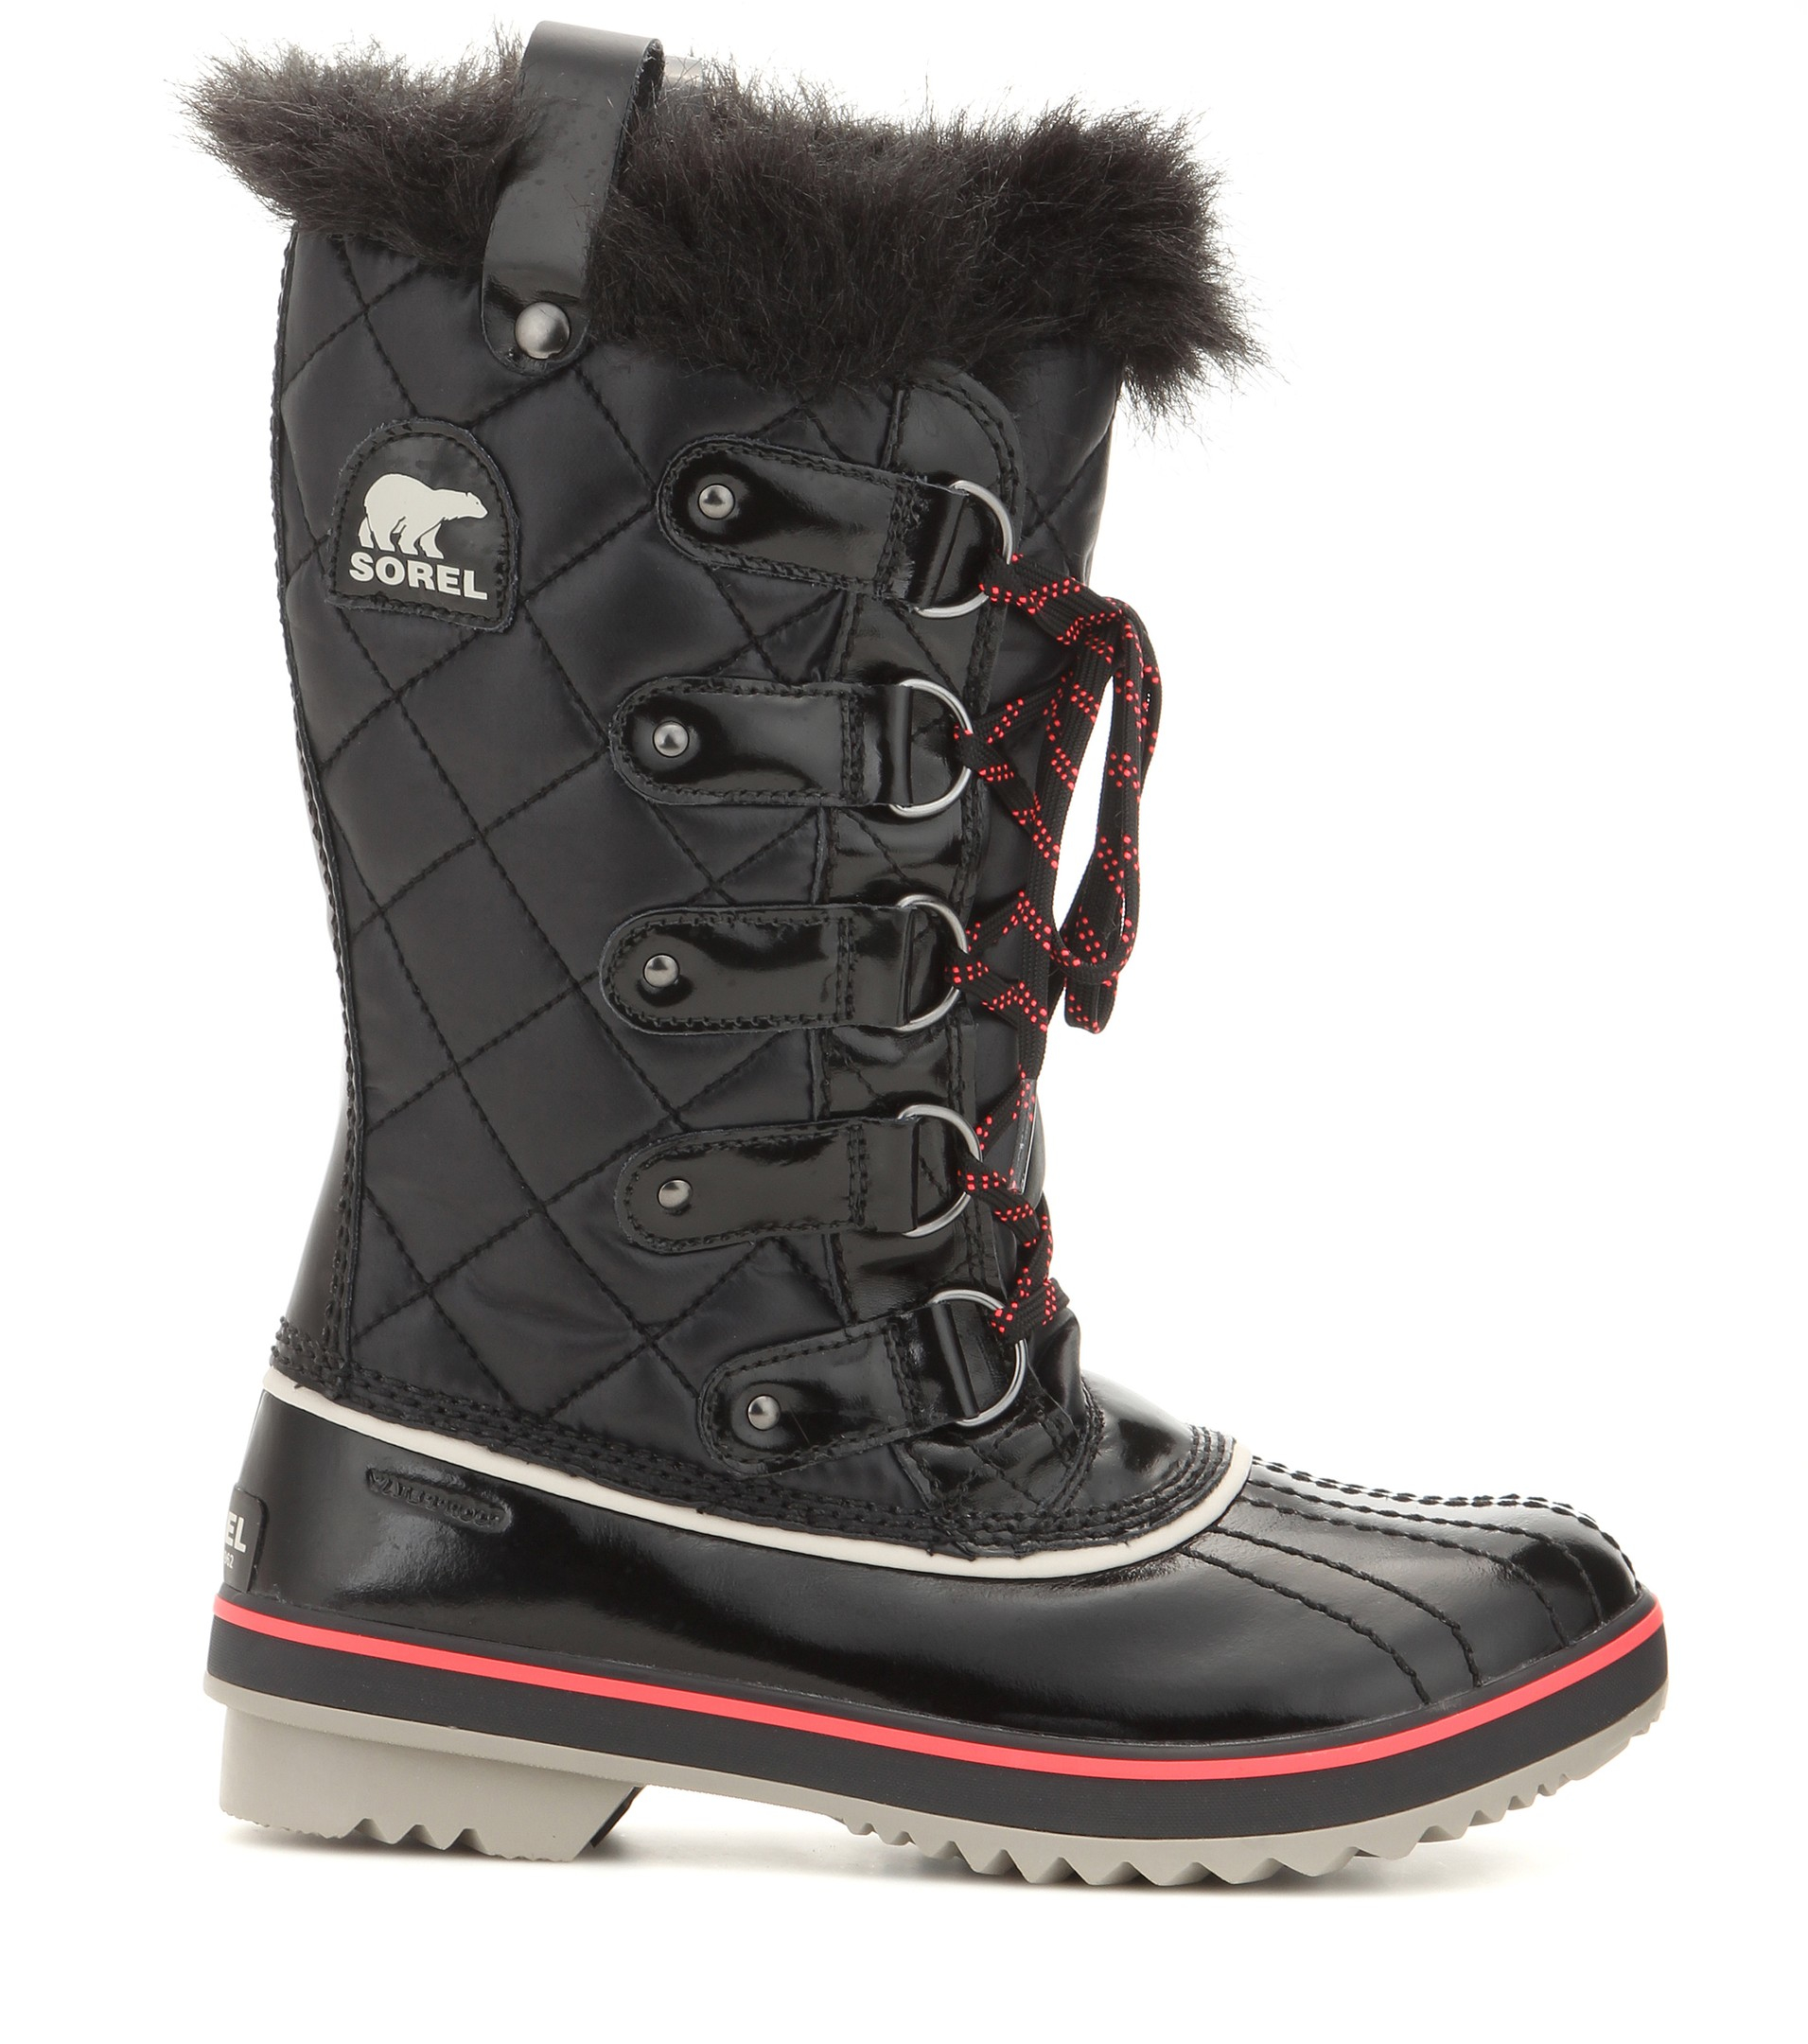 Lyst Sorel Tofino Quilted Snow Boots In Black